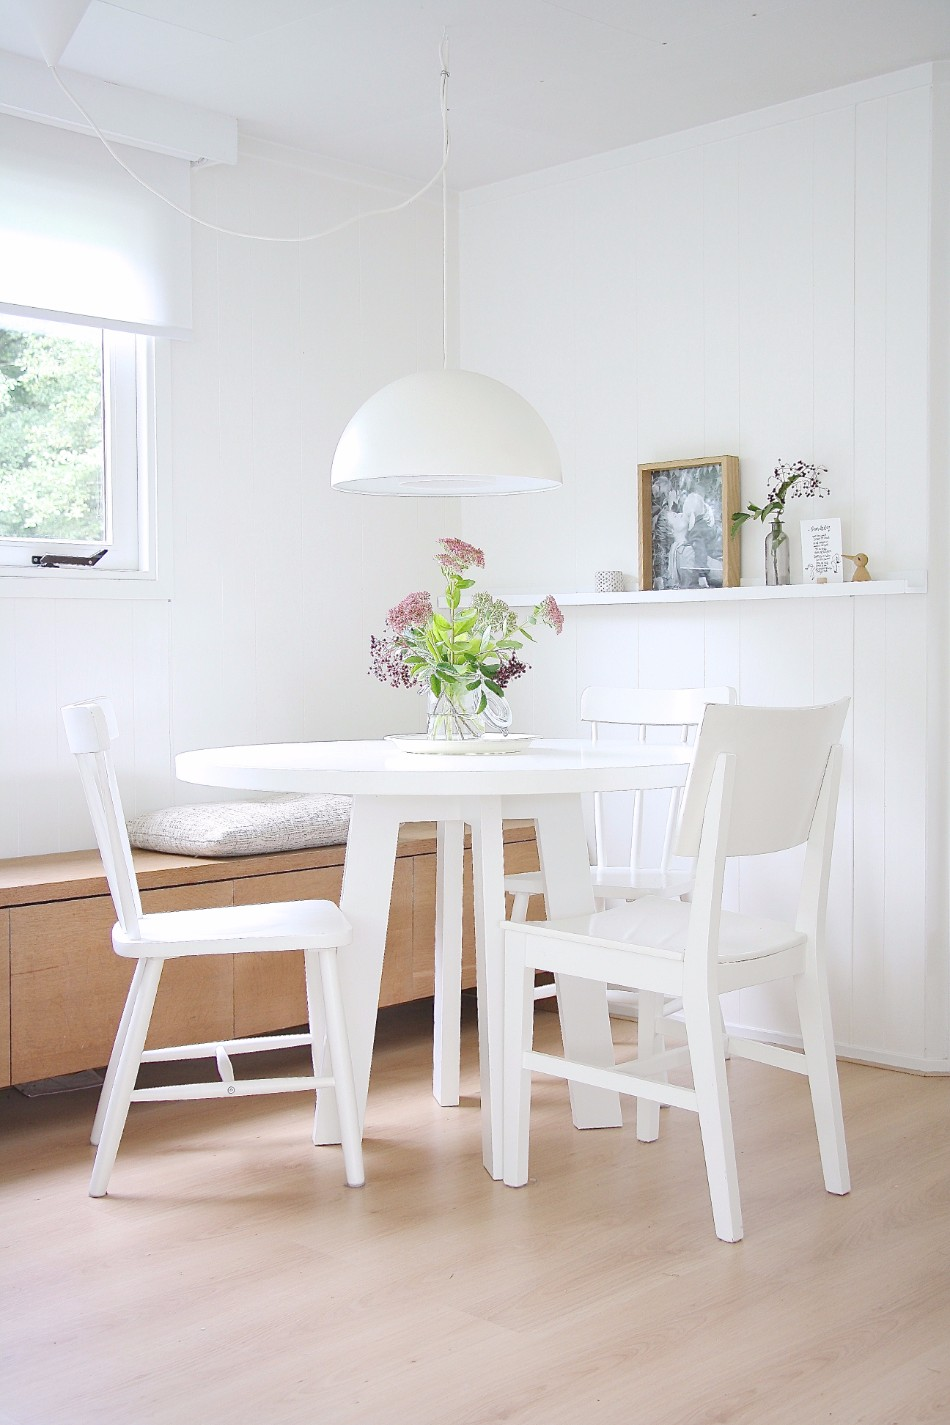 10 Brilliant Ideas Of All-White Dining Areas | www.bocadolobo.com #moderndiningtables #diningarea #thediningarea #diningareadesign #white #luxury #allwhite #interiordesign #homedecorideas @moderndiningtables Dining Room 10 Brilliant Ideas Of All-White Dining Rooms 10 Brilliant Ideas Of All White Dining Rooms 7